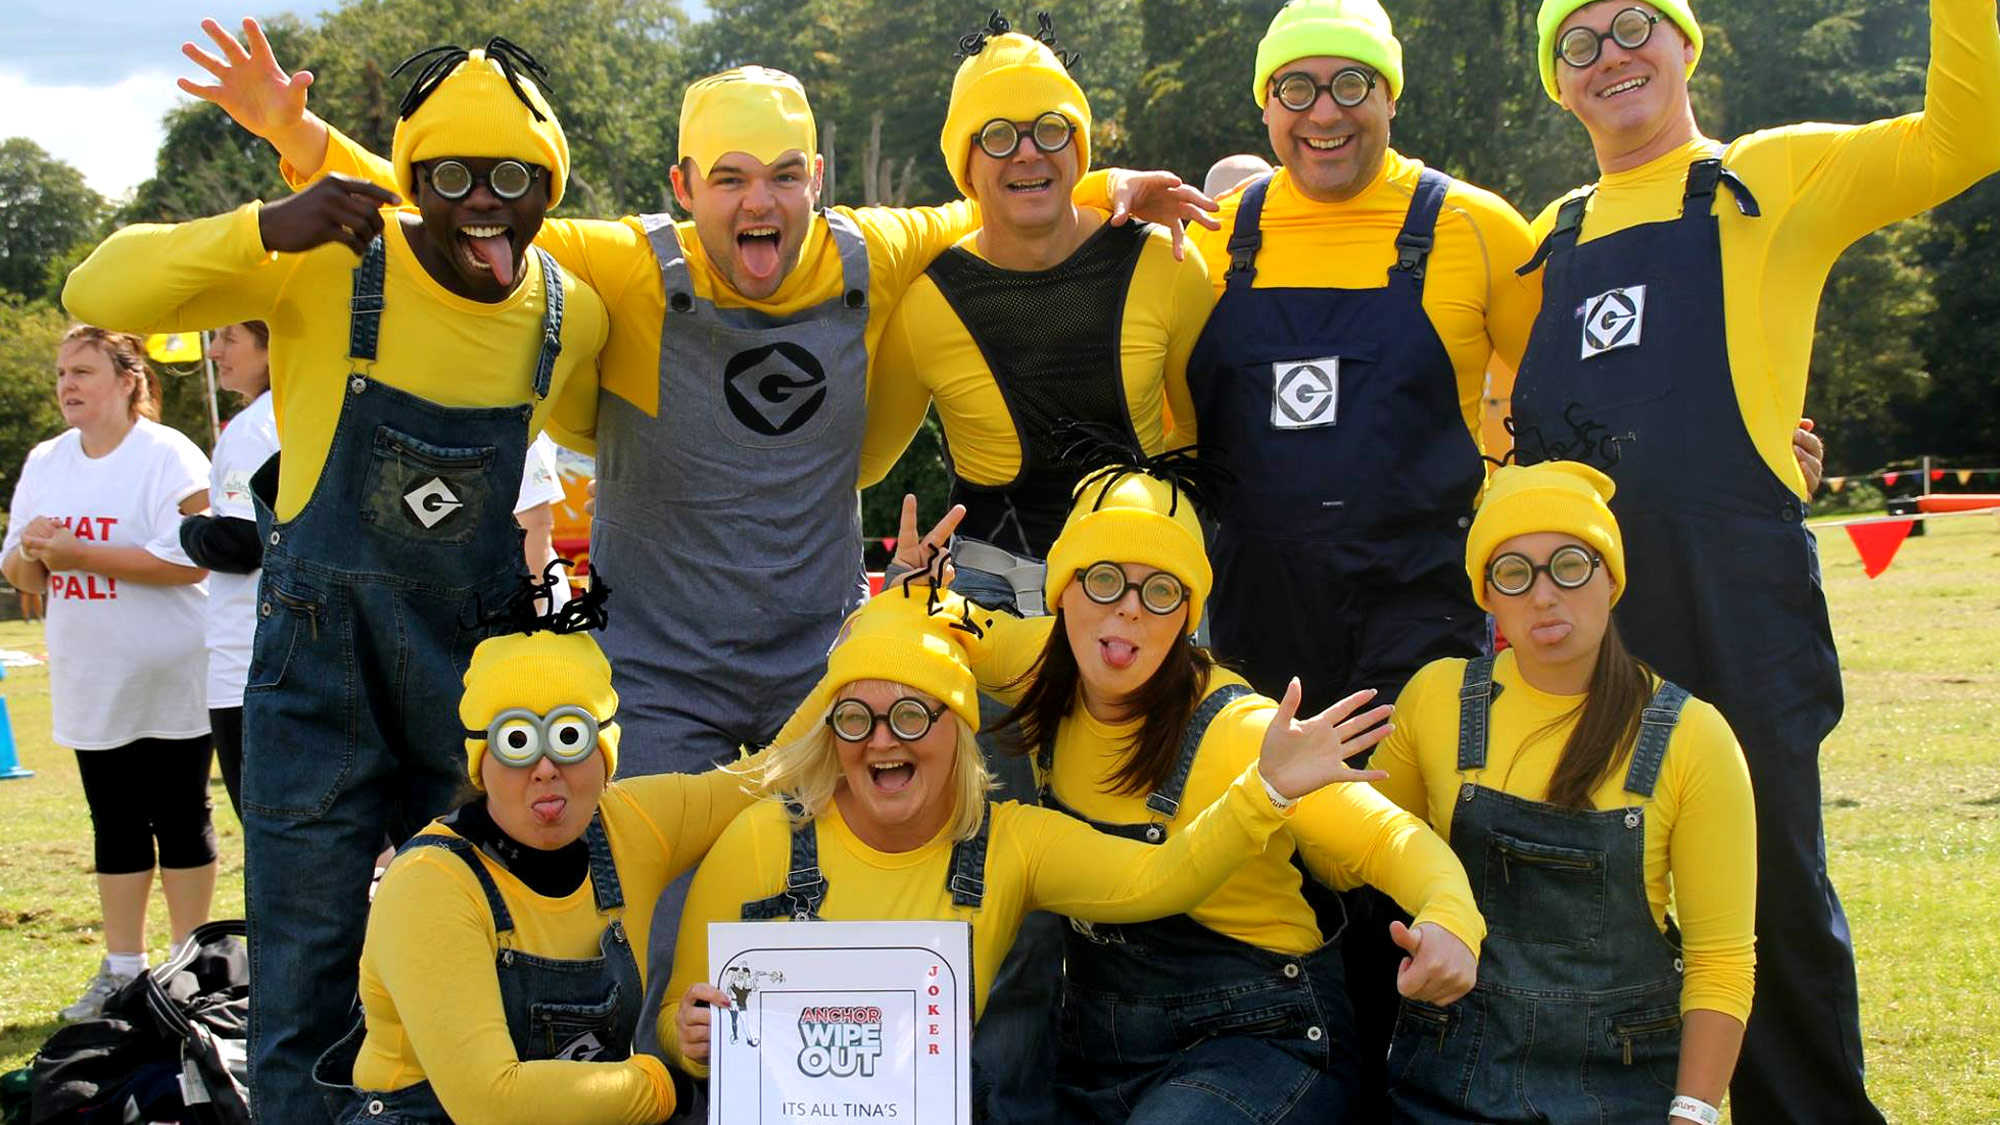 A Minion fancy dressed charity It's A Knockout team